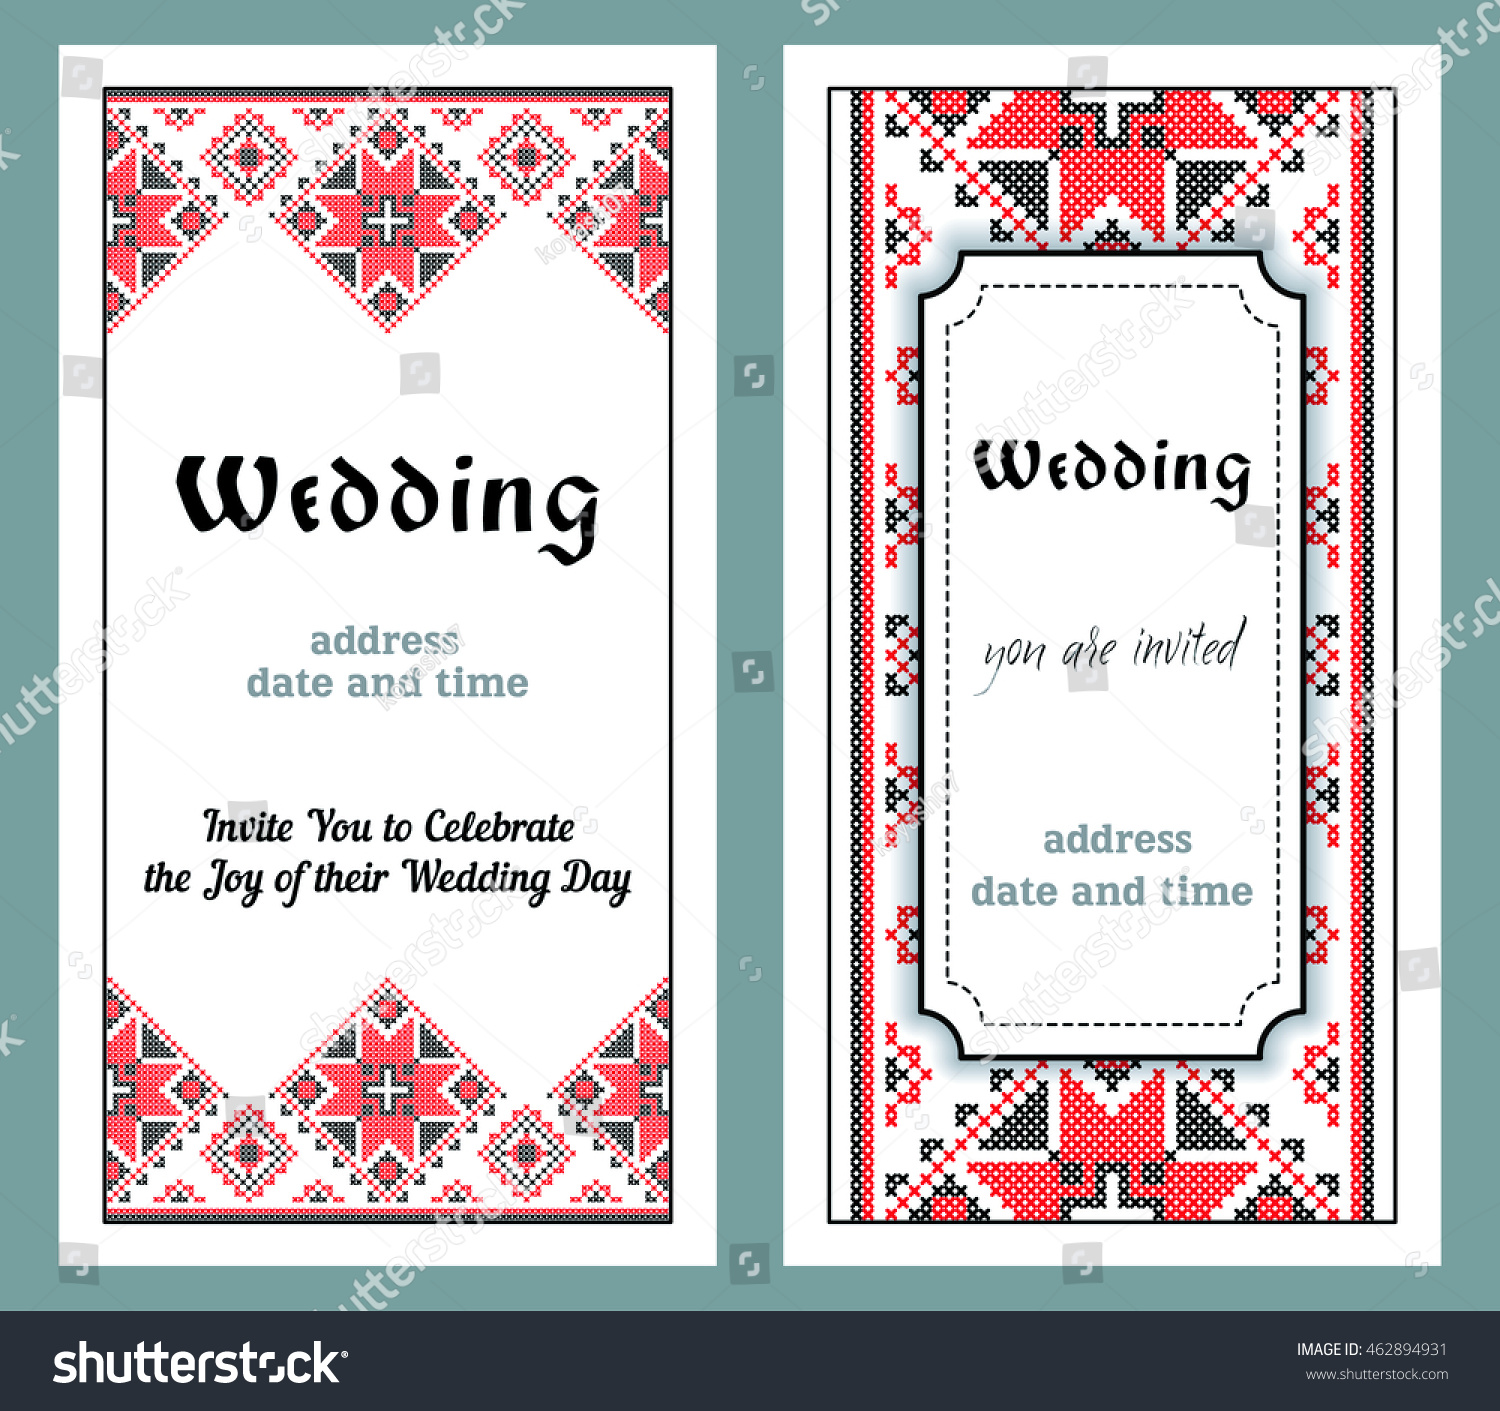 Wedding Invitations Traditional Ukrainian Style Embroidery Stock ...